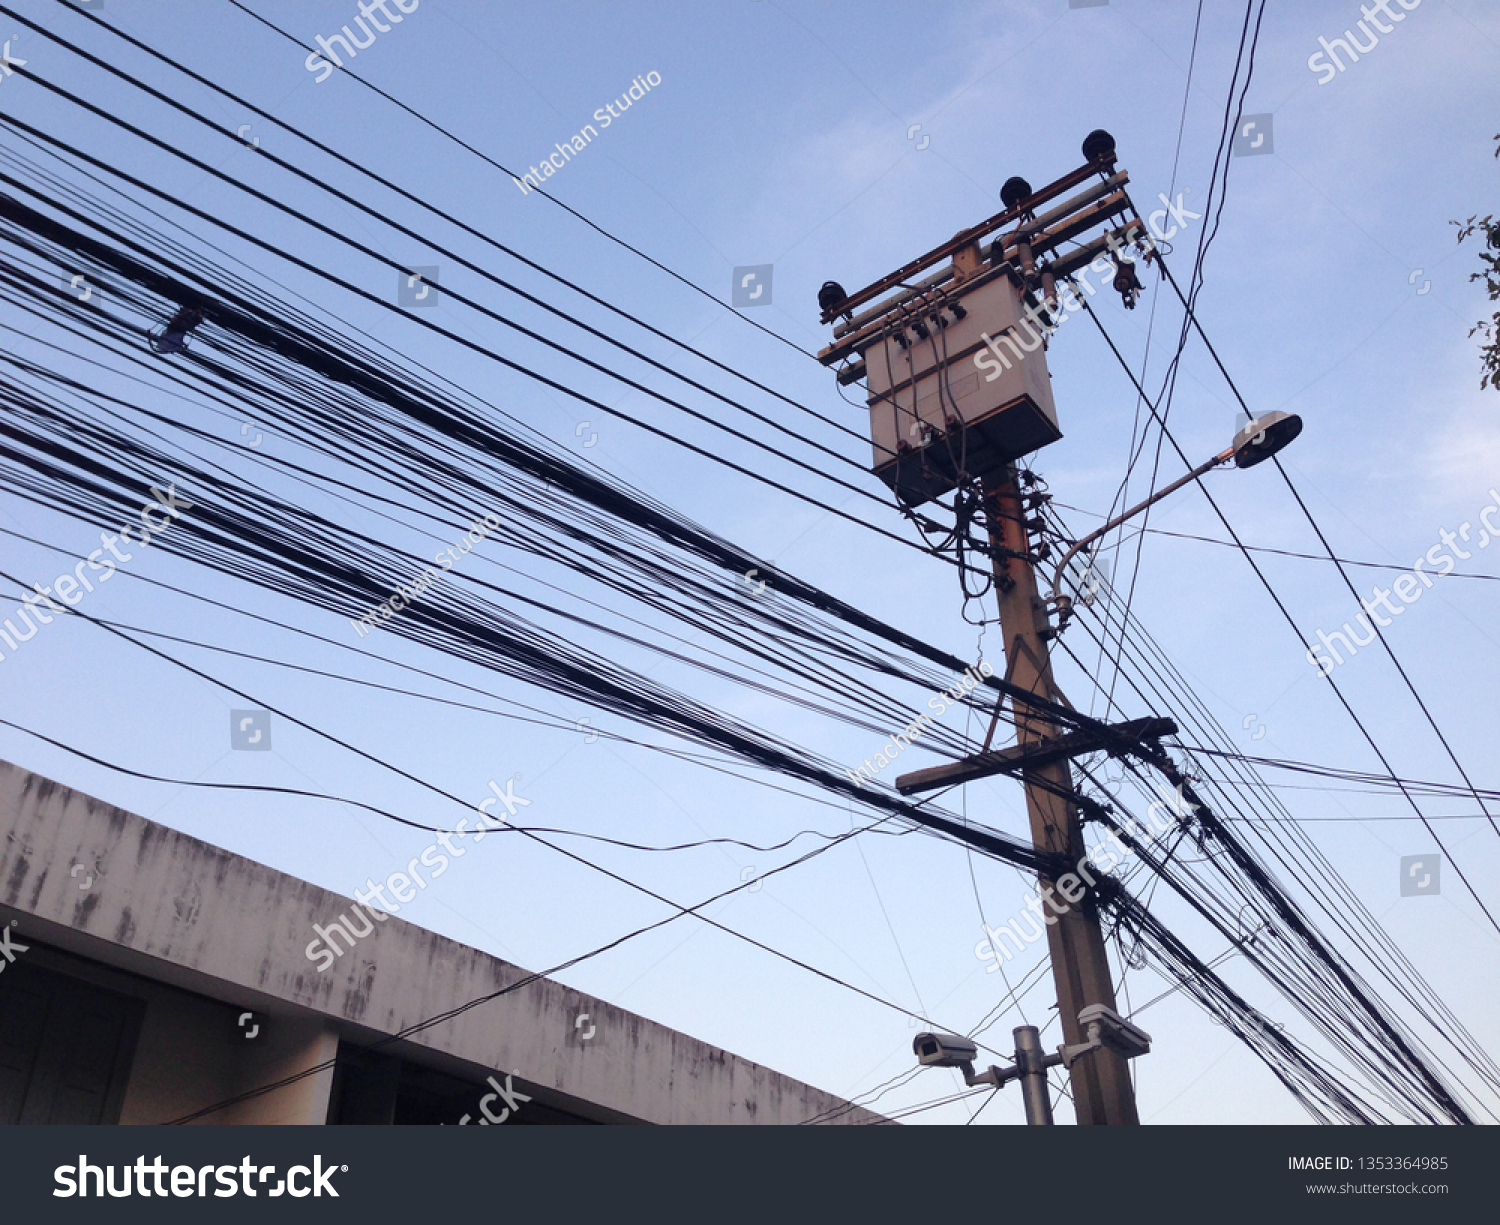 hight resolution of the jumble of messy overhead telephone cables lines commonly seen in bangkok thailand